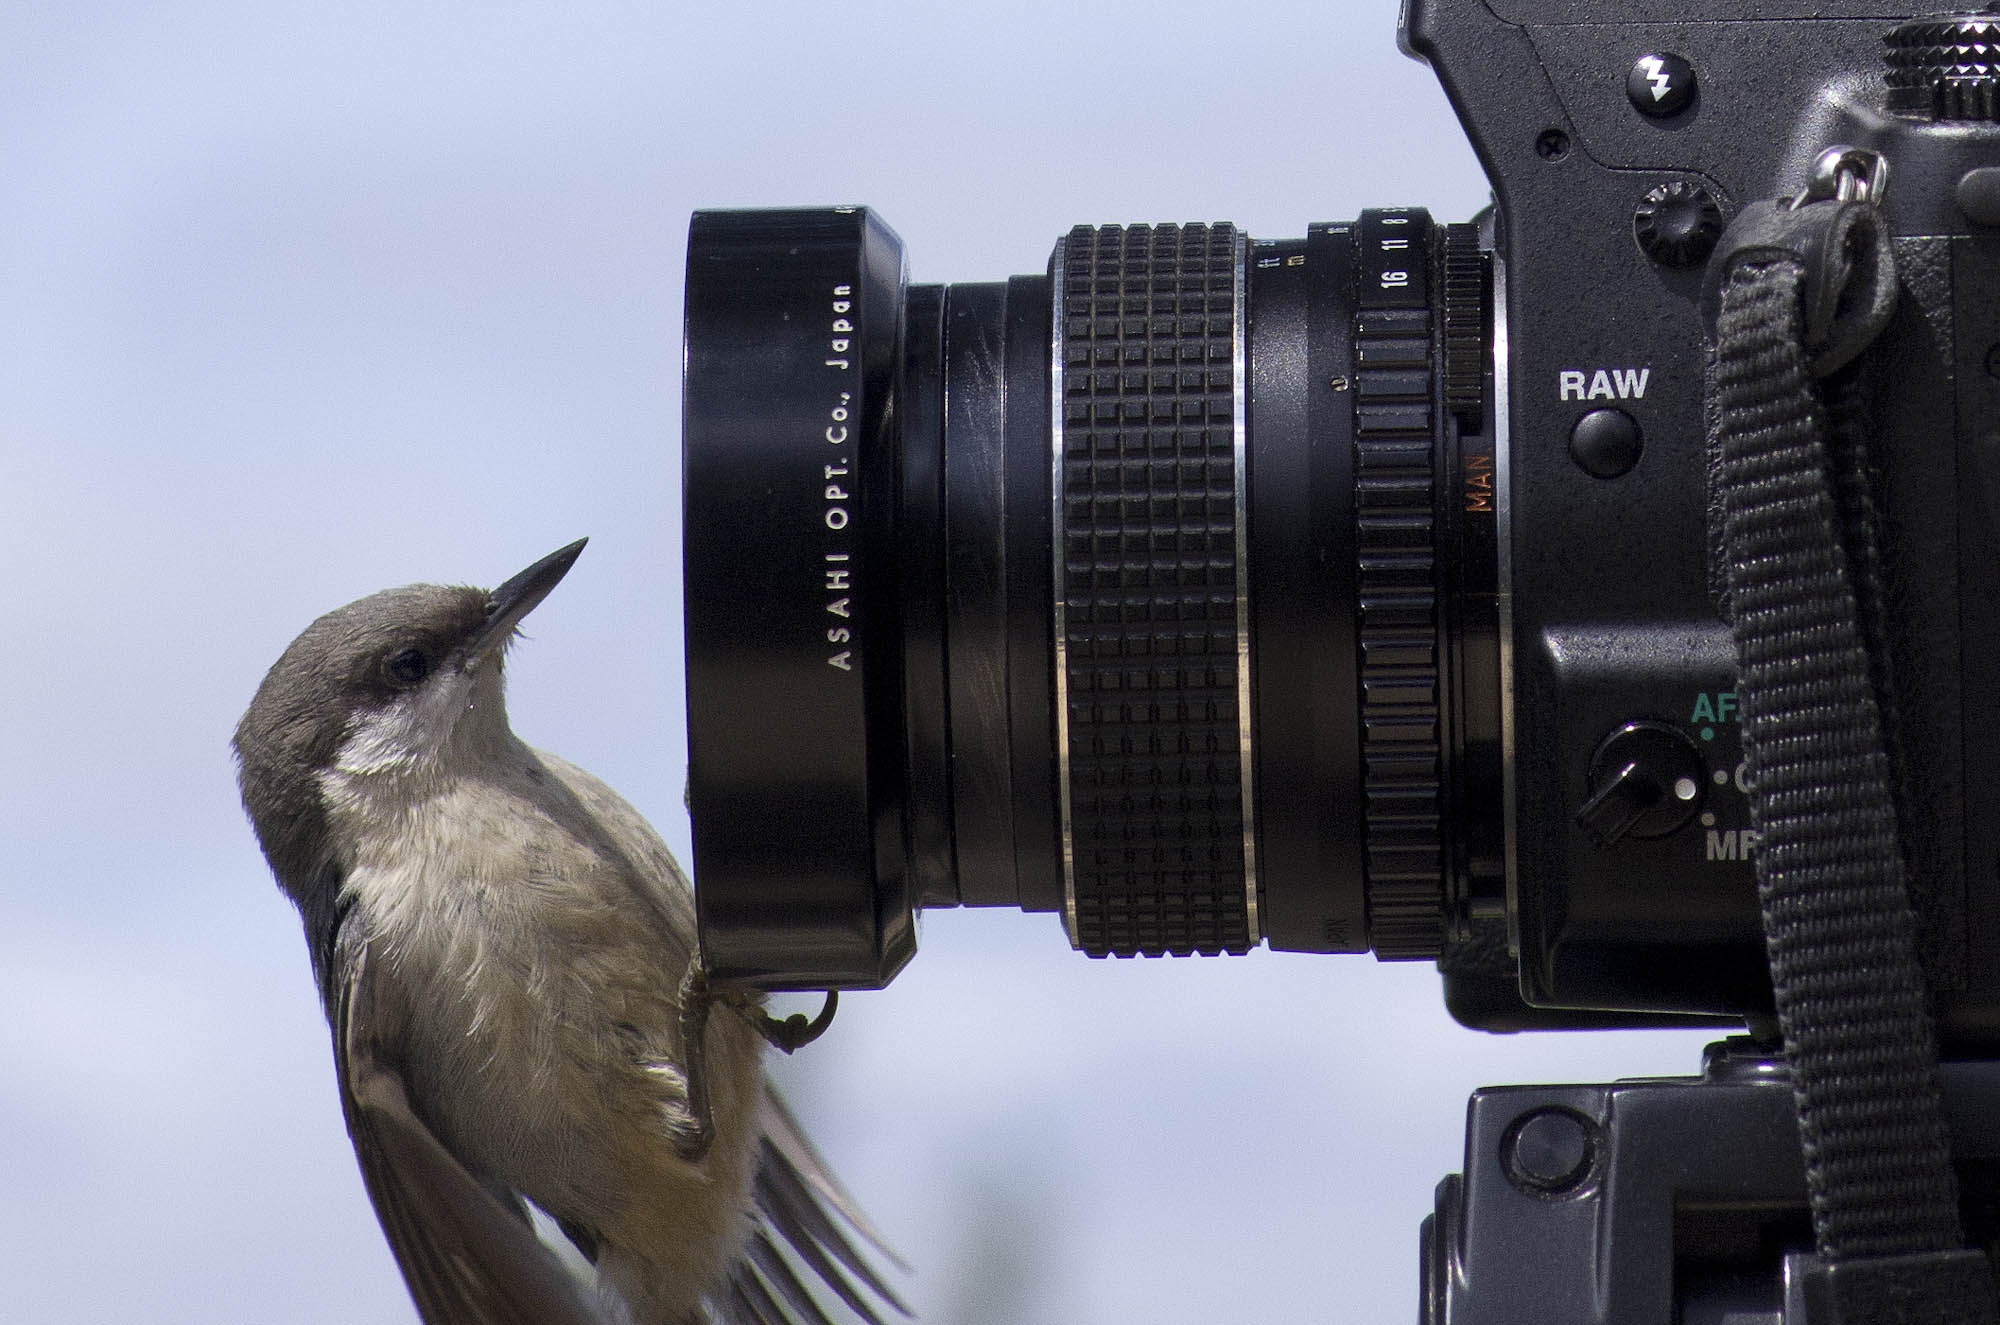 File:Bird sitting on camera.jpg - Wikimedia Commons